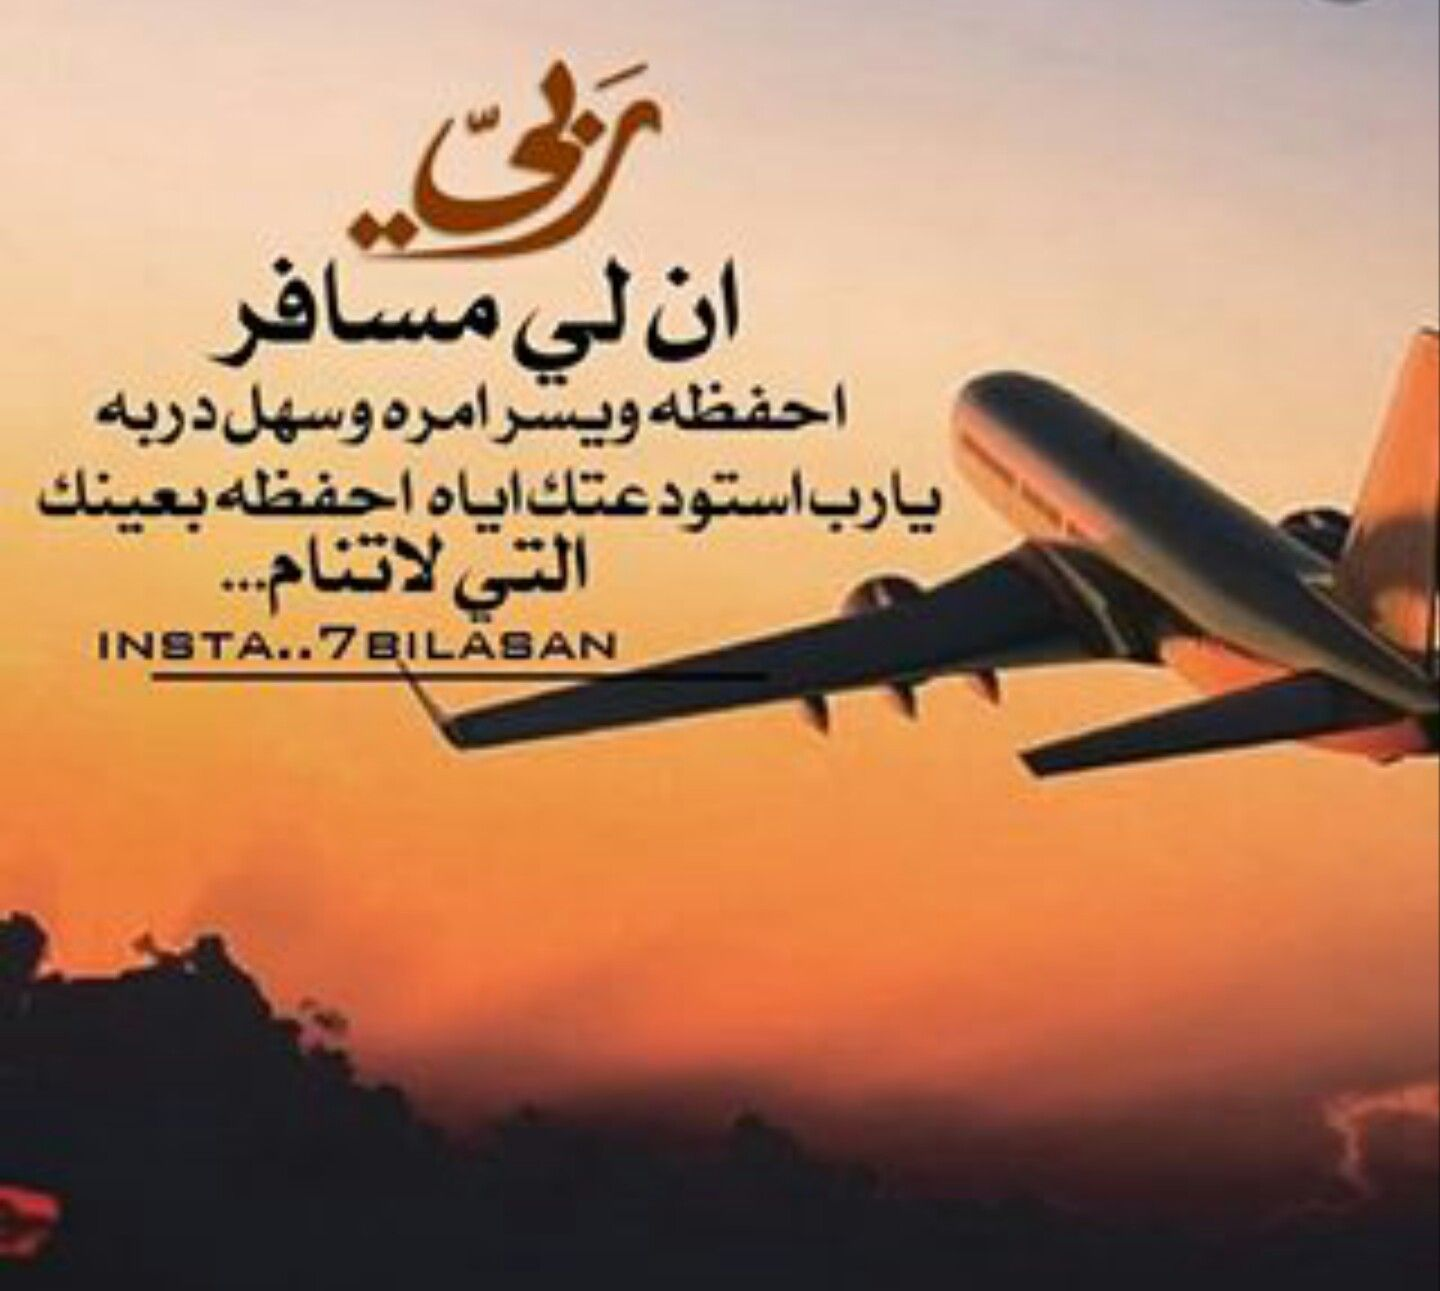 Pin By Jannah On Travel Love Messages Arabic Words Baby Boys Wall